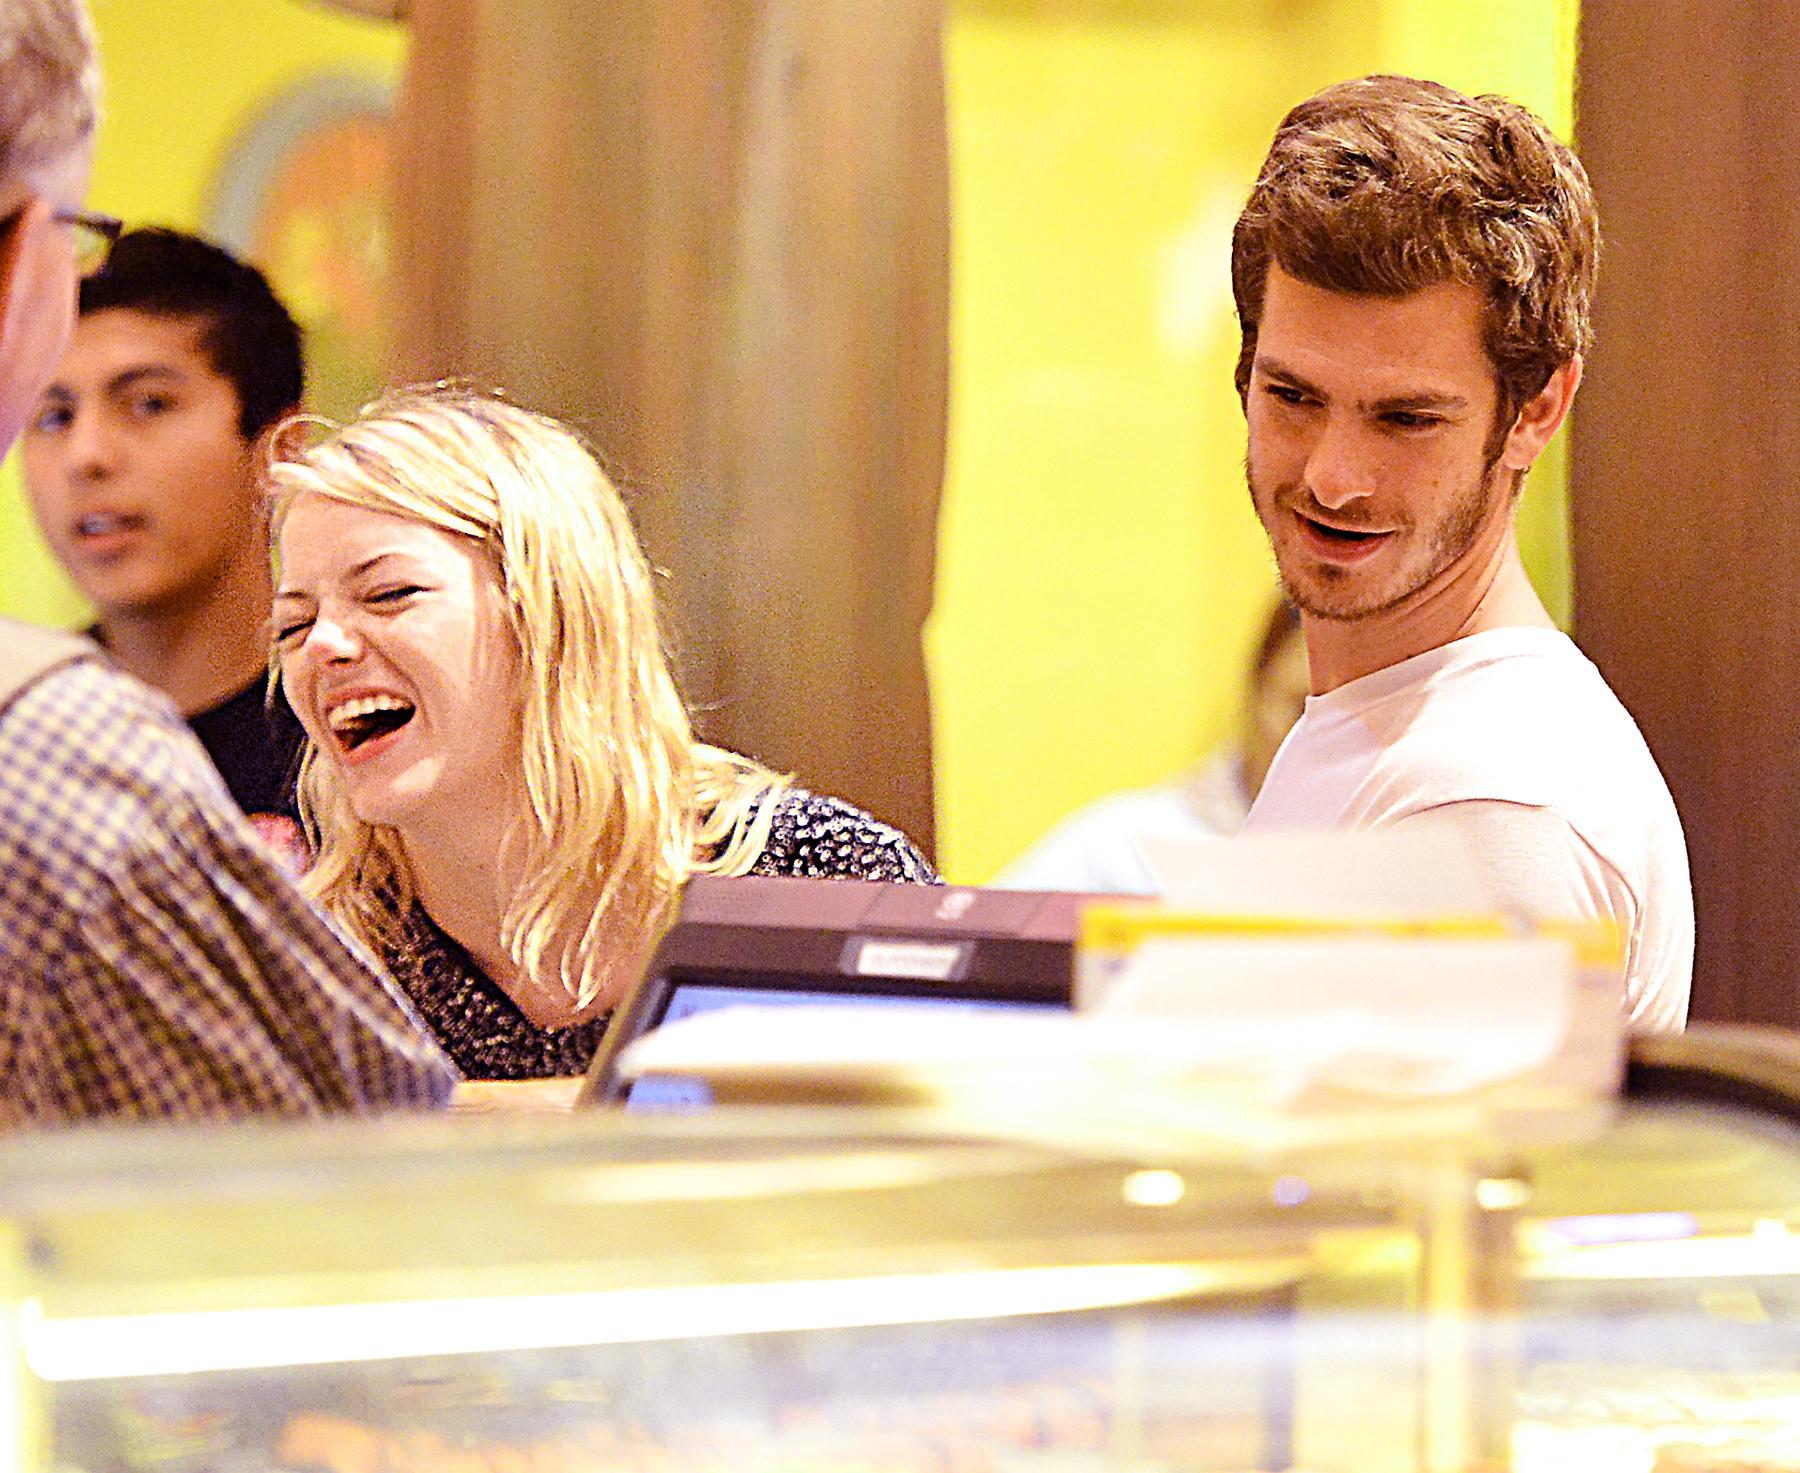 Emma Stone and Andrew Garfield at Disneyland in 2012.